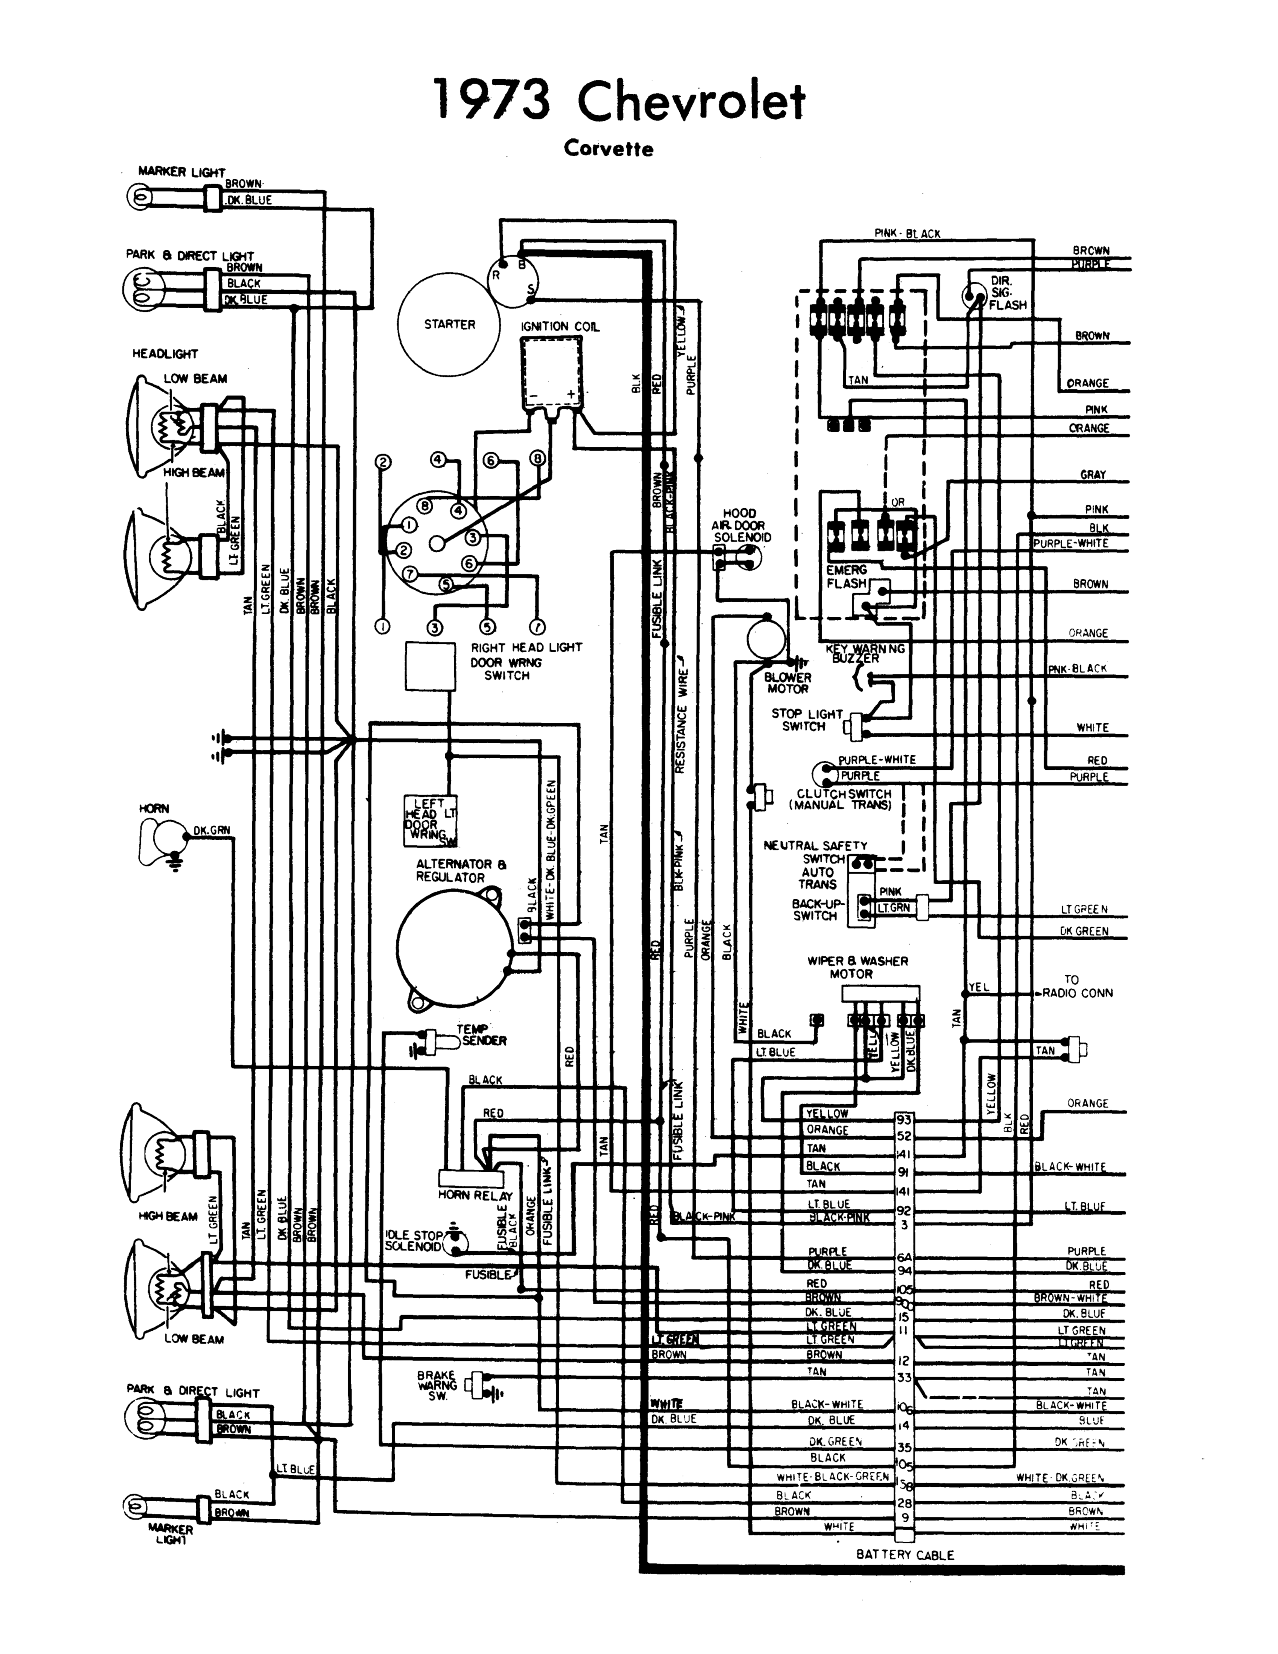 73 Chevelle Wiring Diagram Bookmark About 1966 Caprice Schematic 1973 Chevy Diagrams Schematics Rh 4 15 8 Jacqueline Helm De 1964